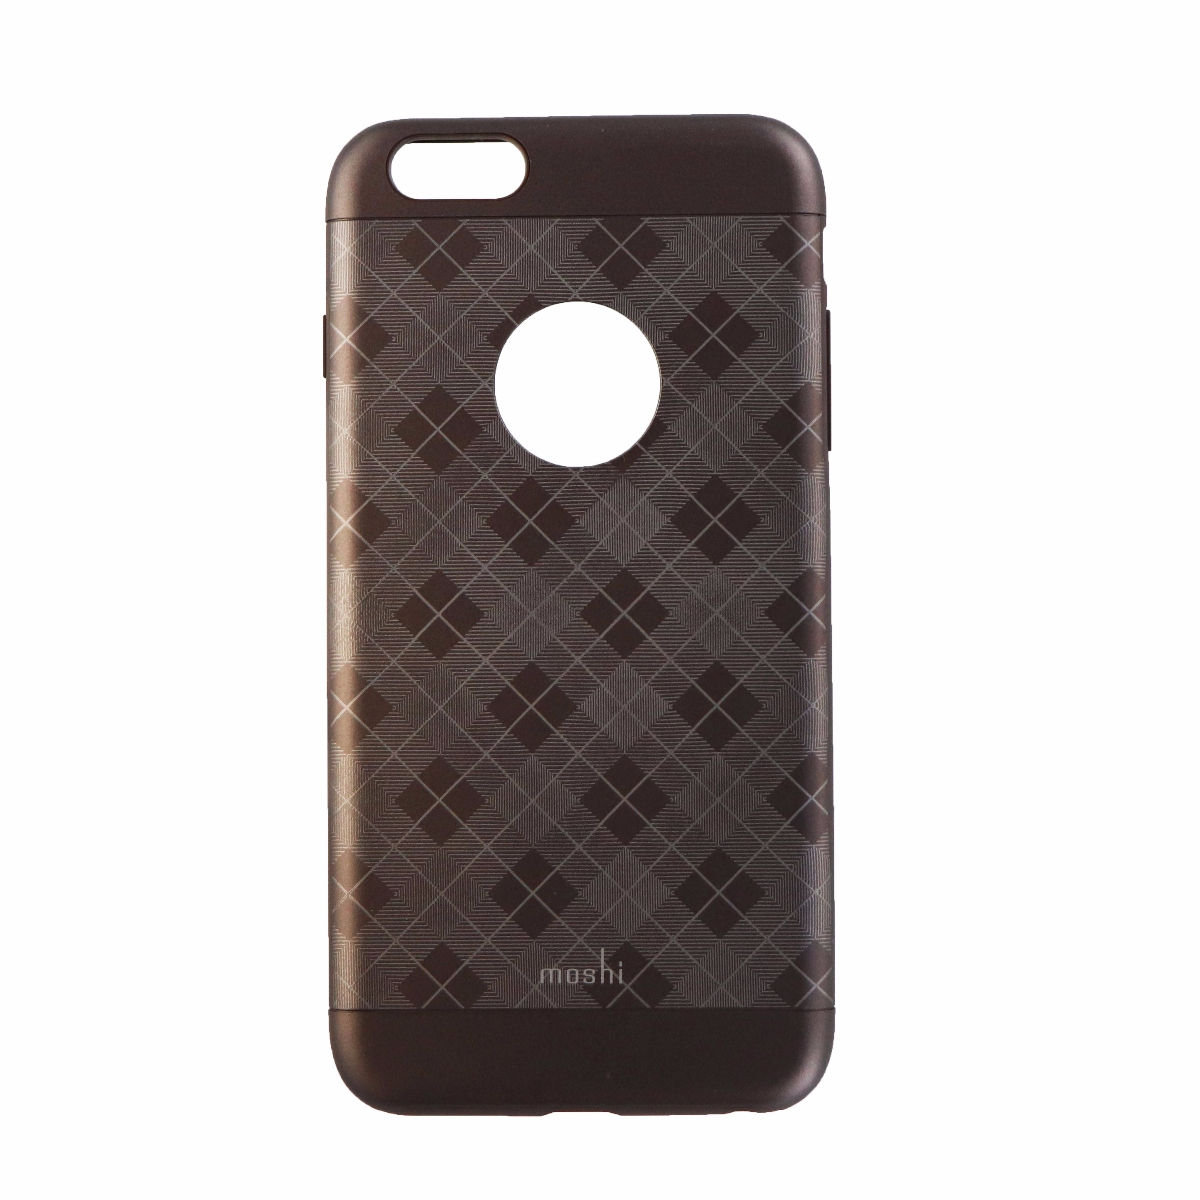 Moshi iGlaze Durable Snap One Case for iPhone 6s Plus 6 Plus - Checkered Brown